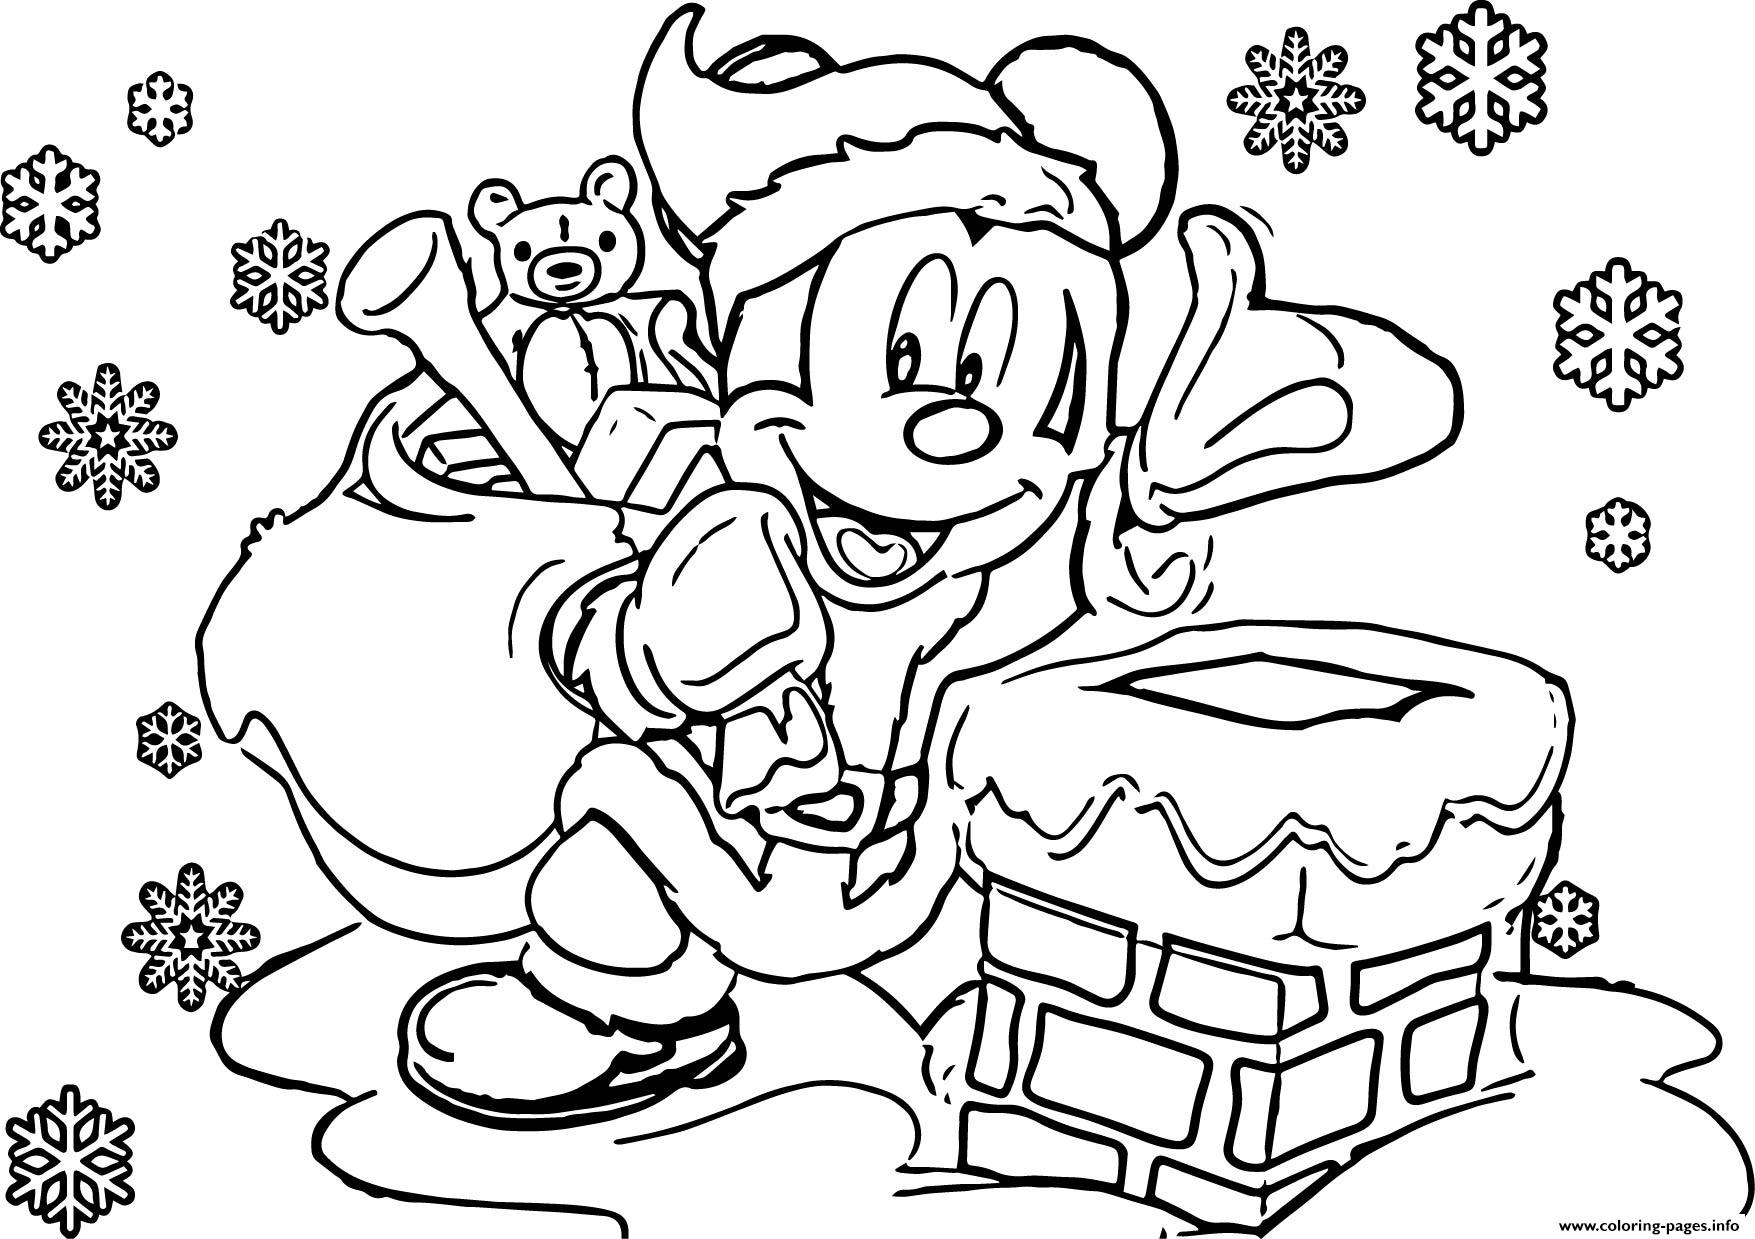 Disney christmas color coloring pages printable for Disney christmas printable coloring pages